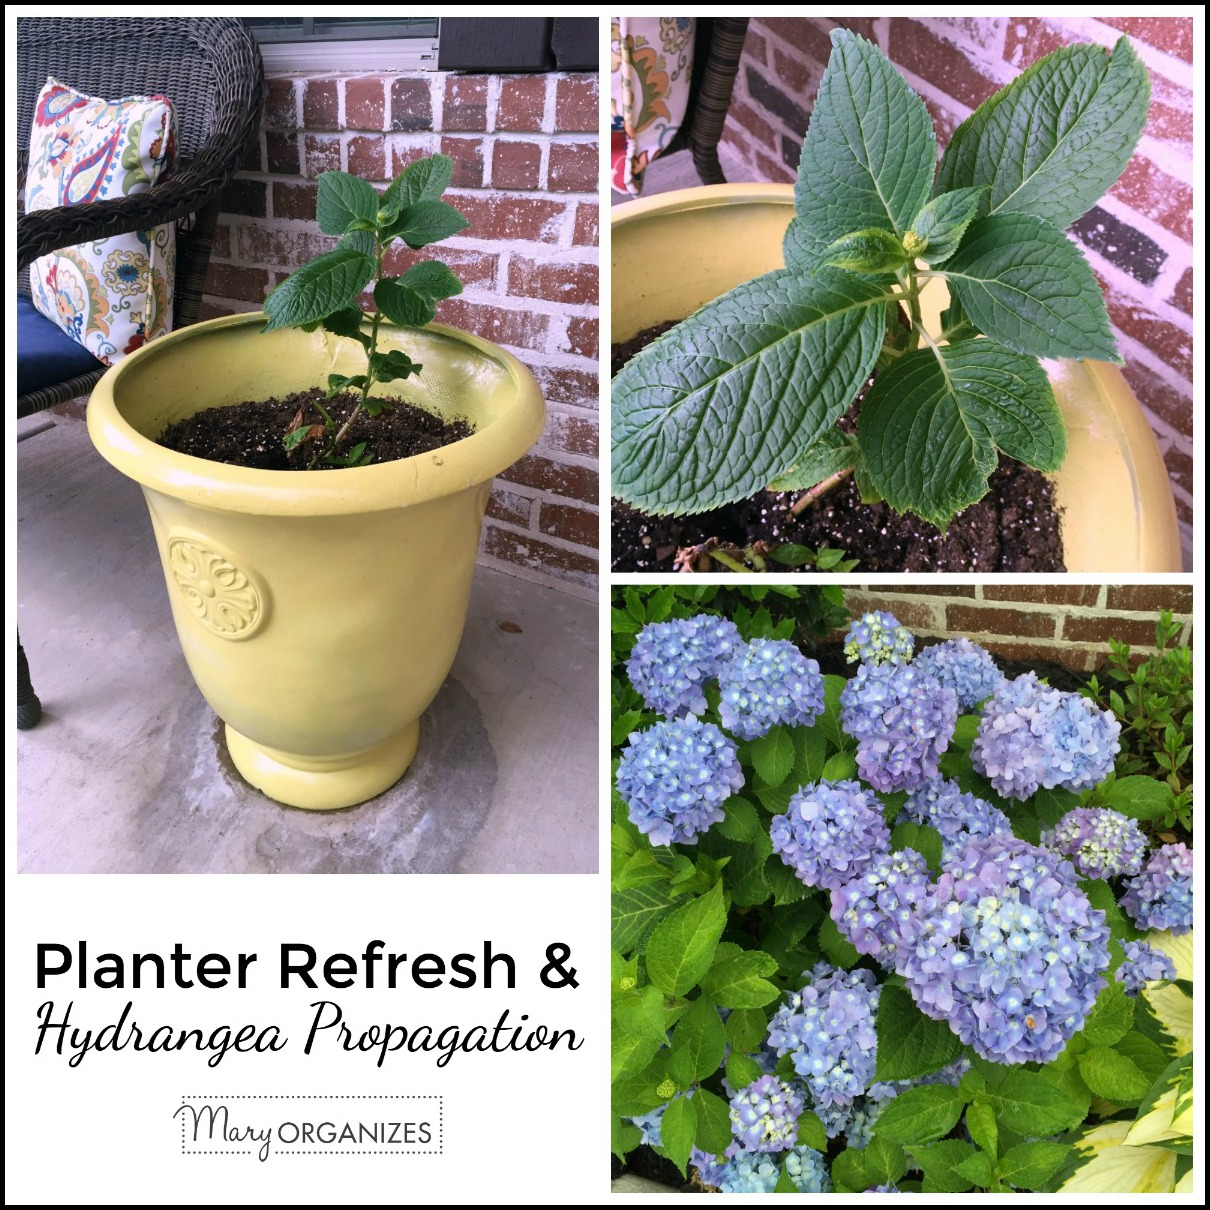 Planter Refresh and Hydrangea Propagation -s